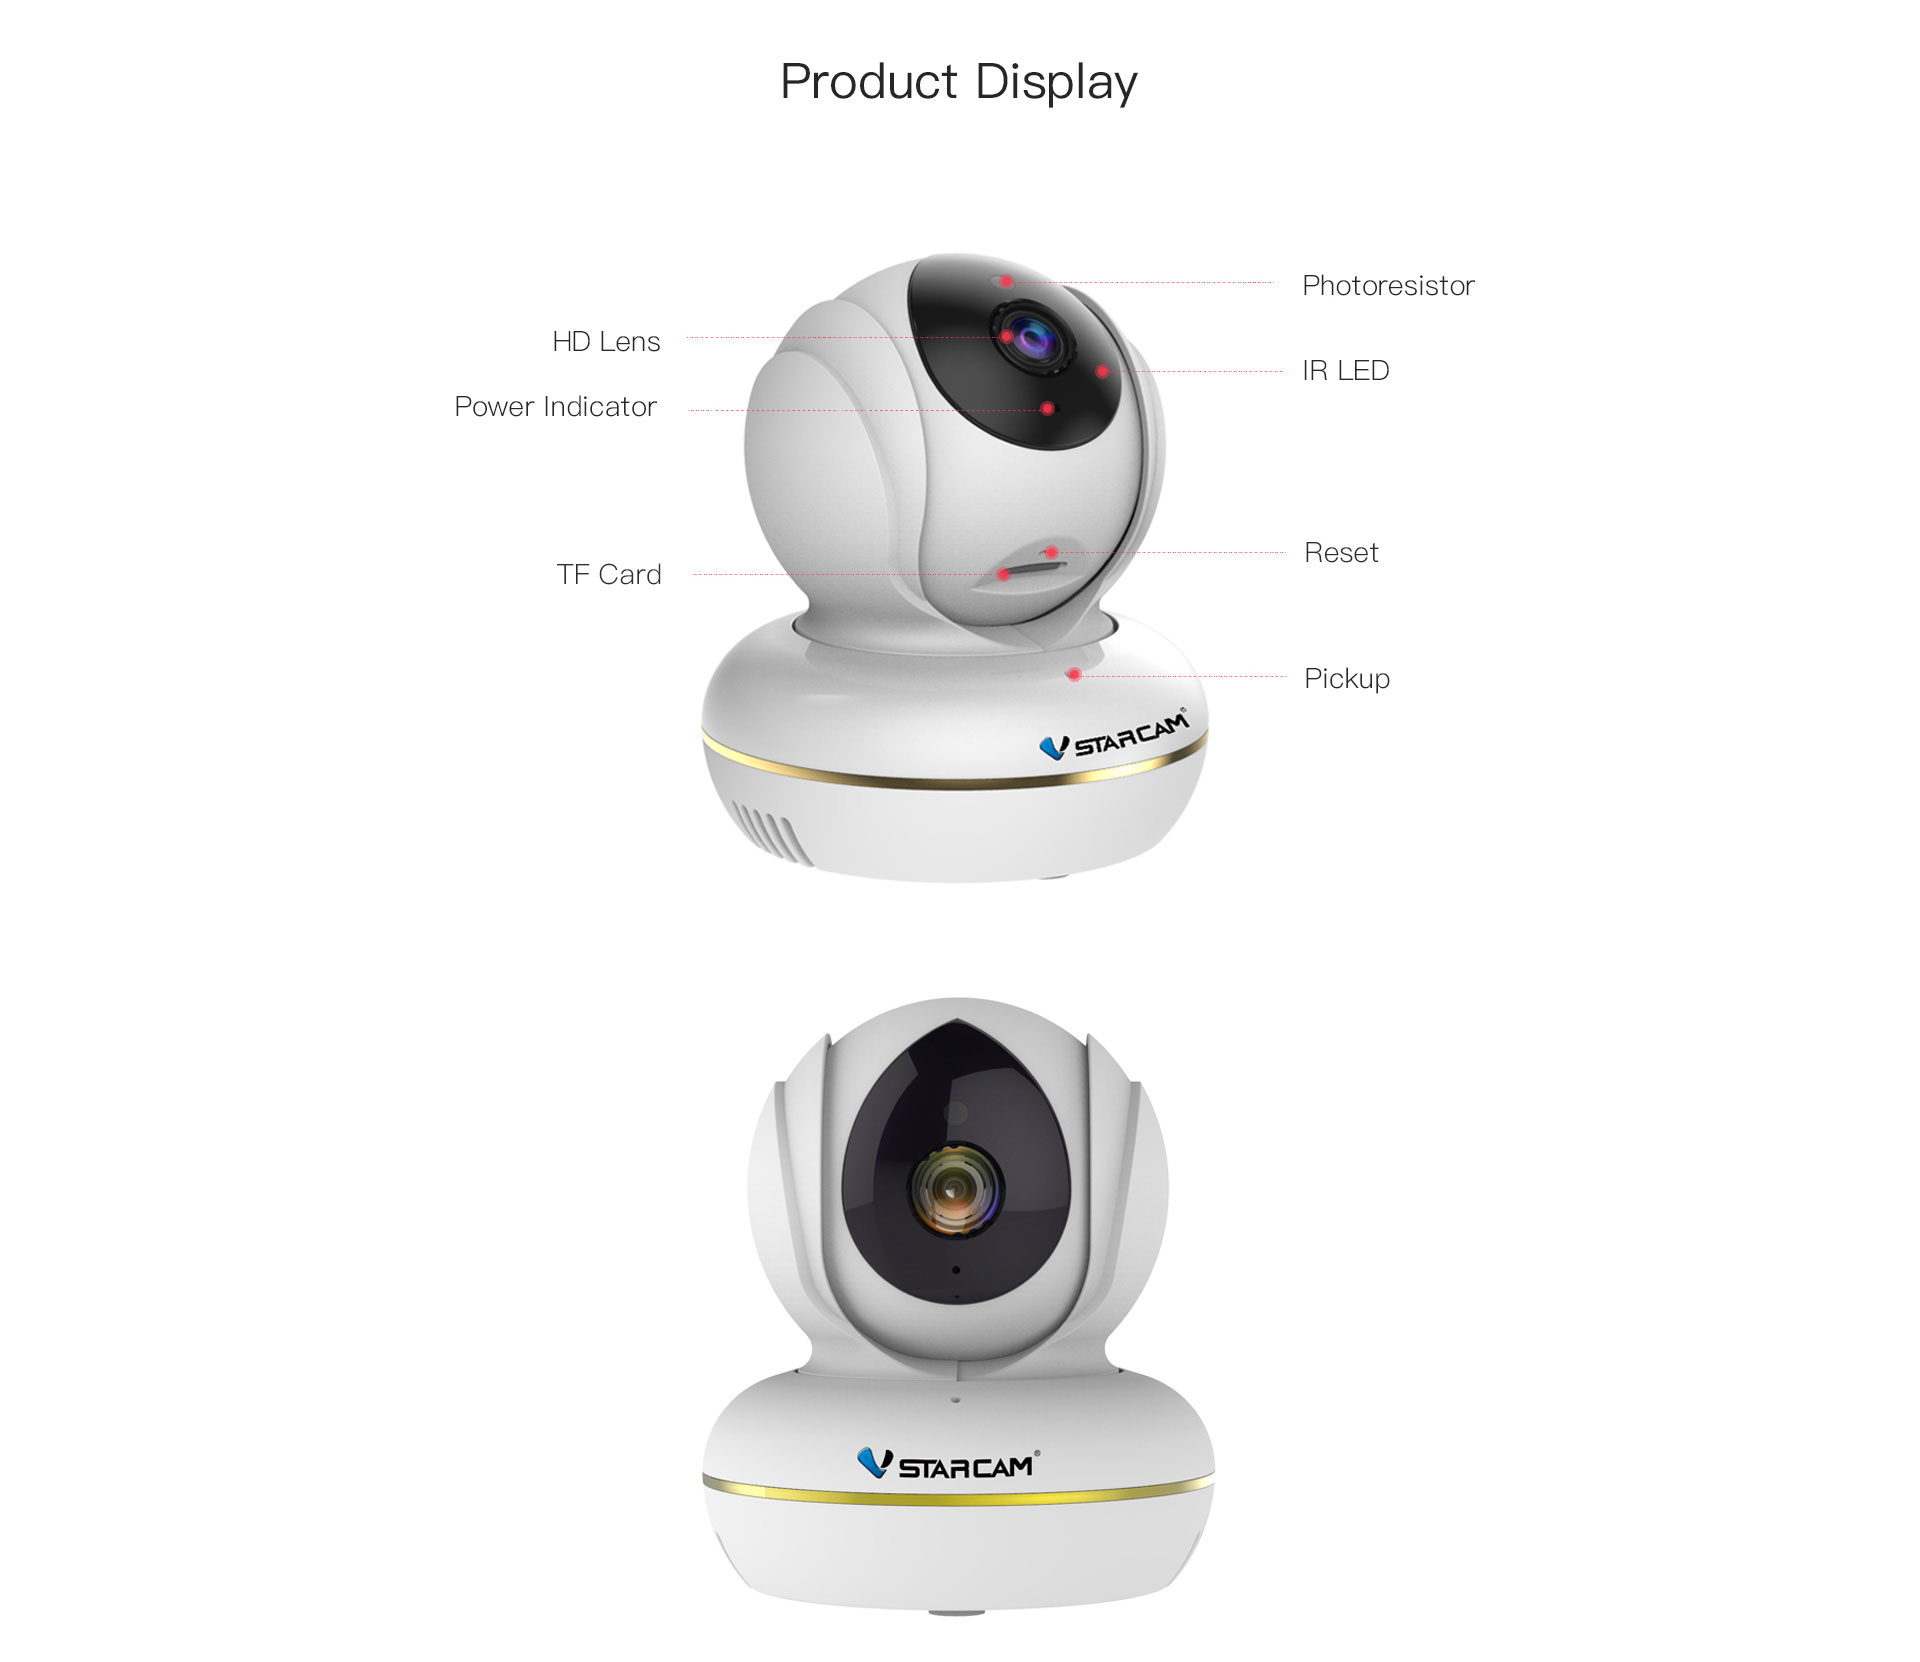 network-camera-product-display